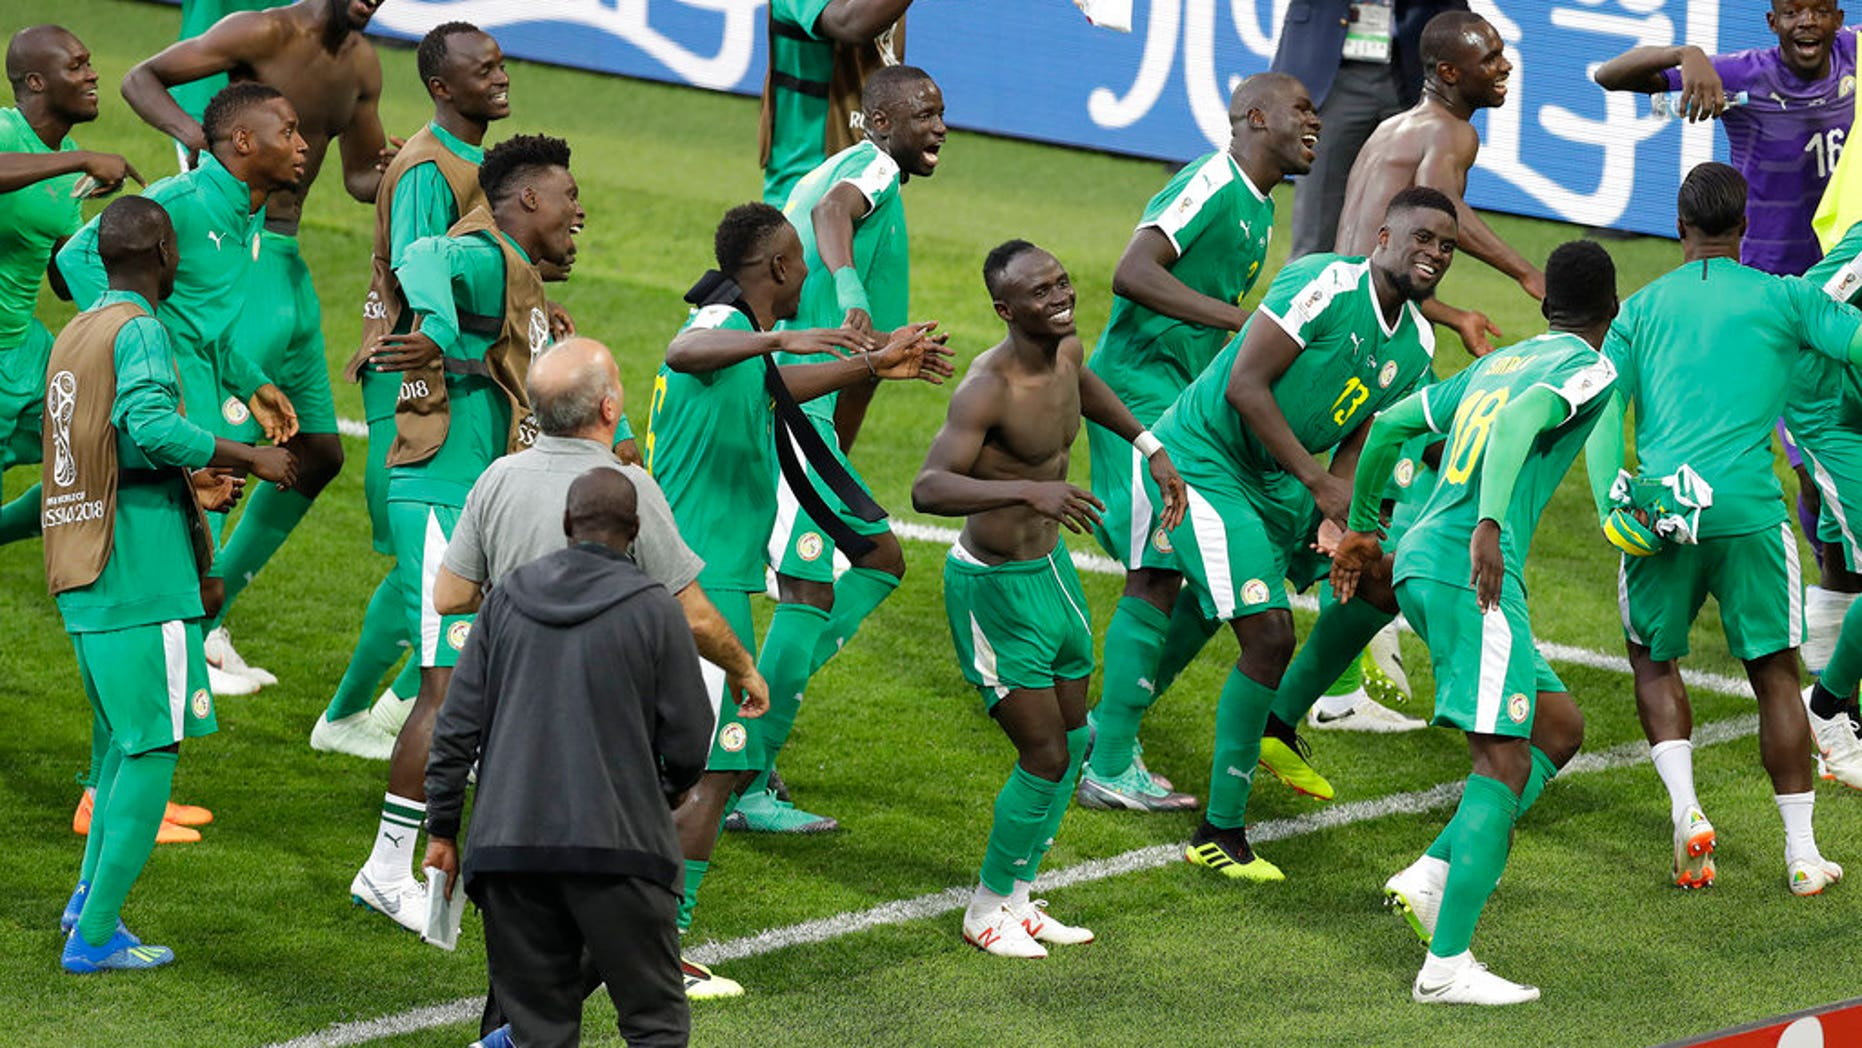 Senegal players celebrate after winning over Poland at the 2018 soccer World Cup in Moscow, Russia, Tuesday, June 19, 2018.